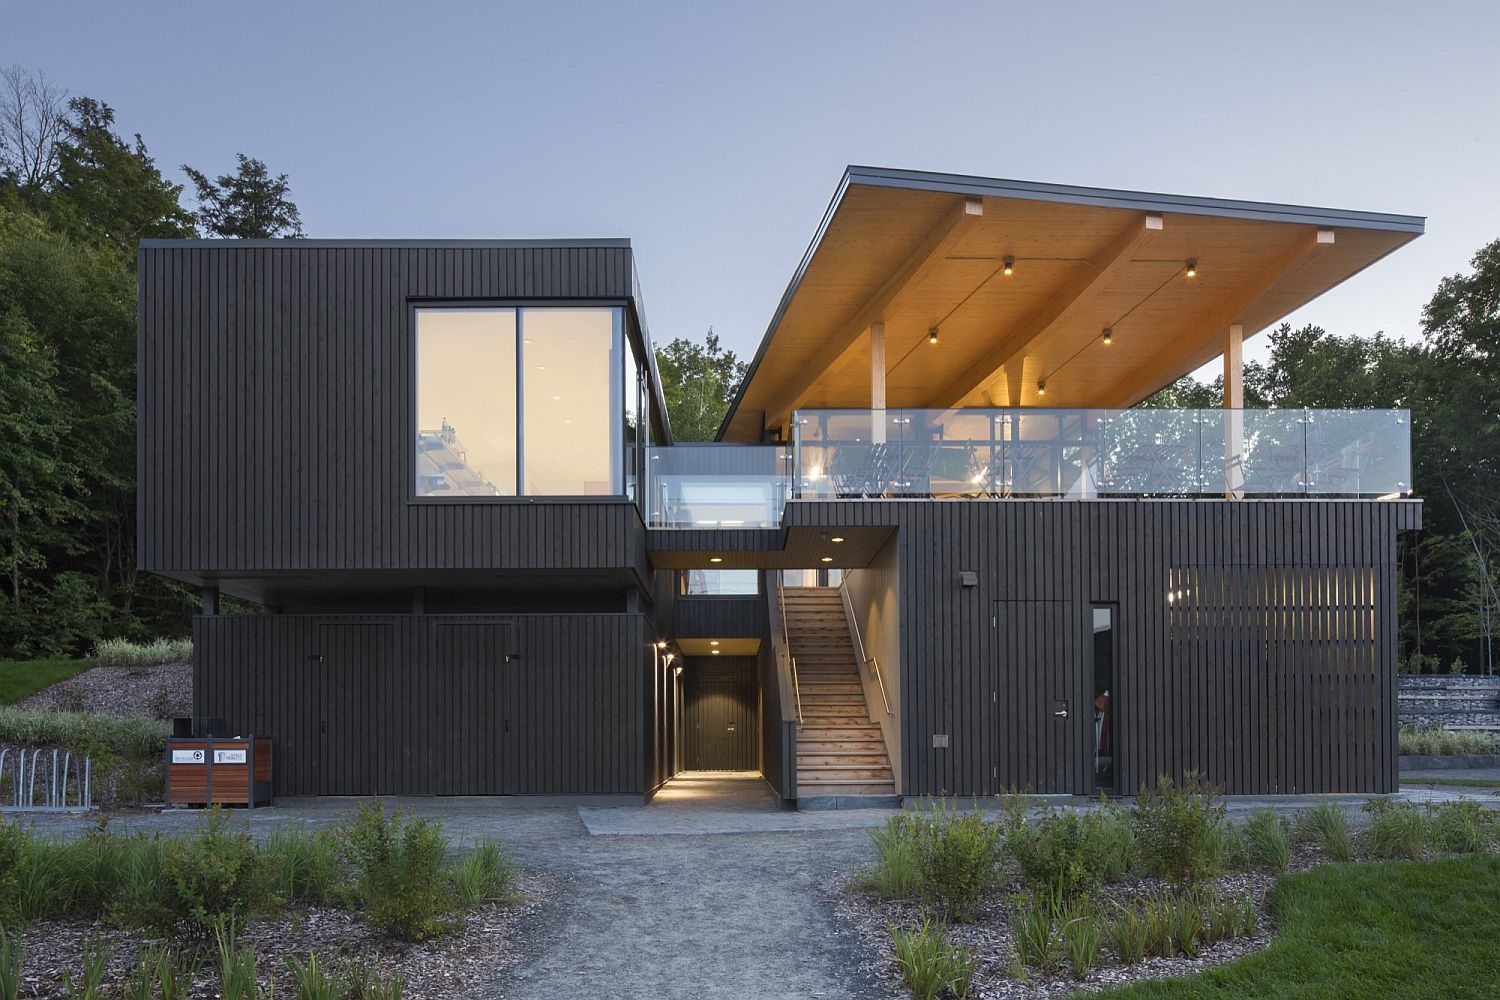 Dark exterior of the building draws inspiration from the landscape around it